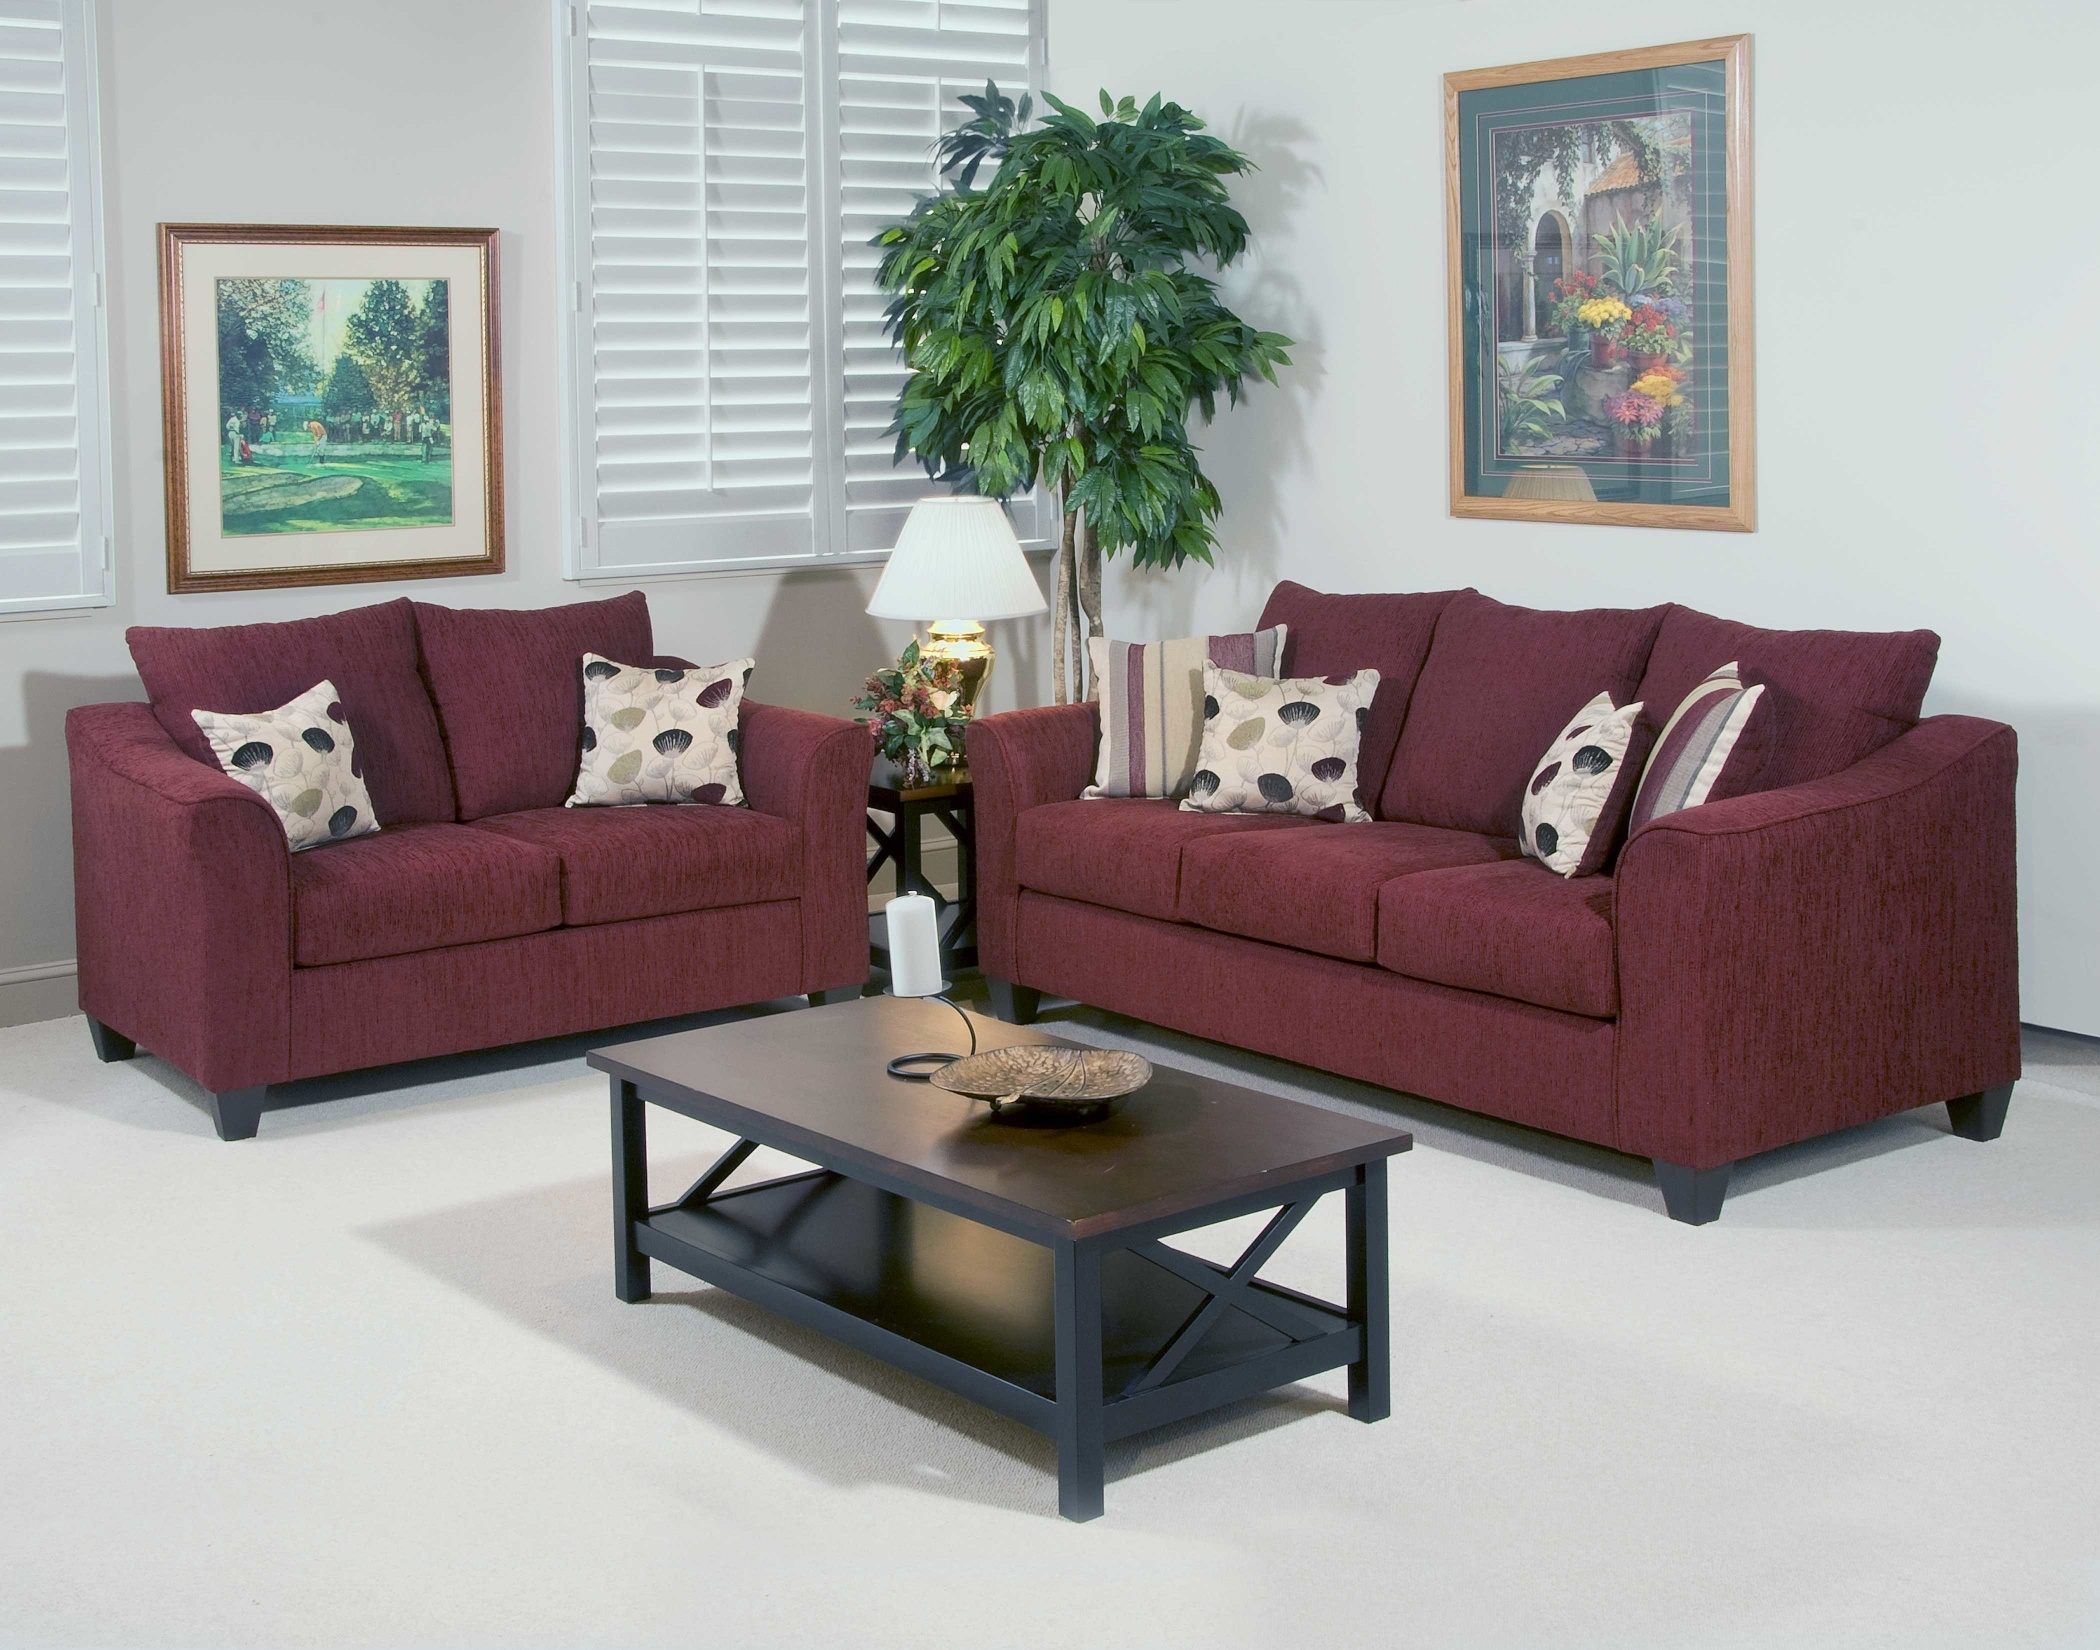 Doc s Furniture Coupons near me in West Columbia